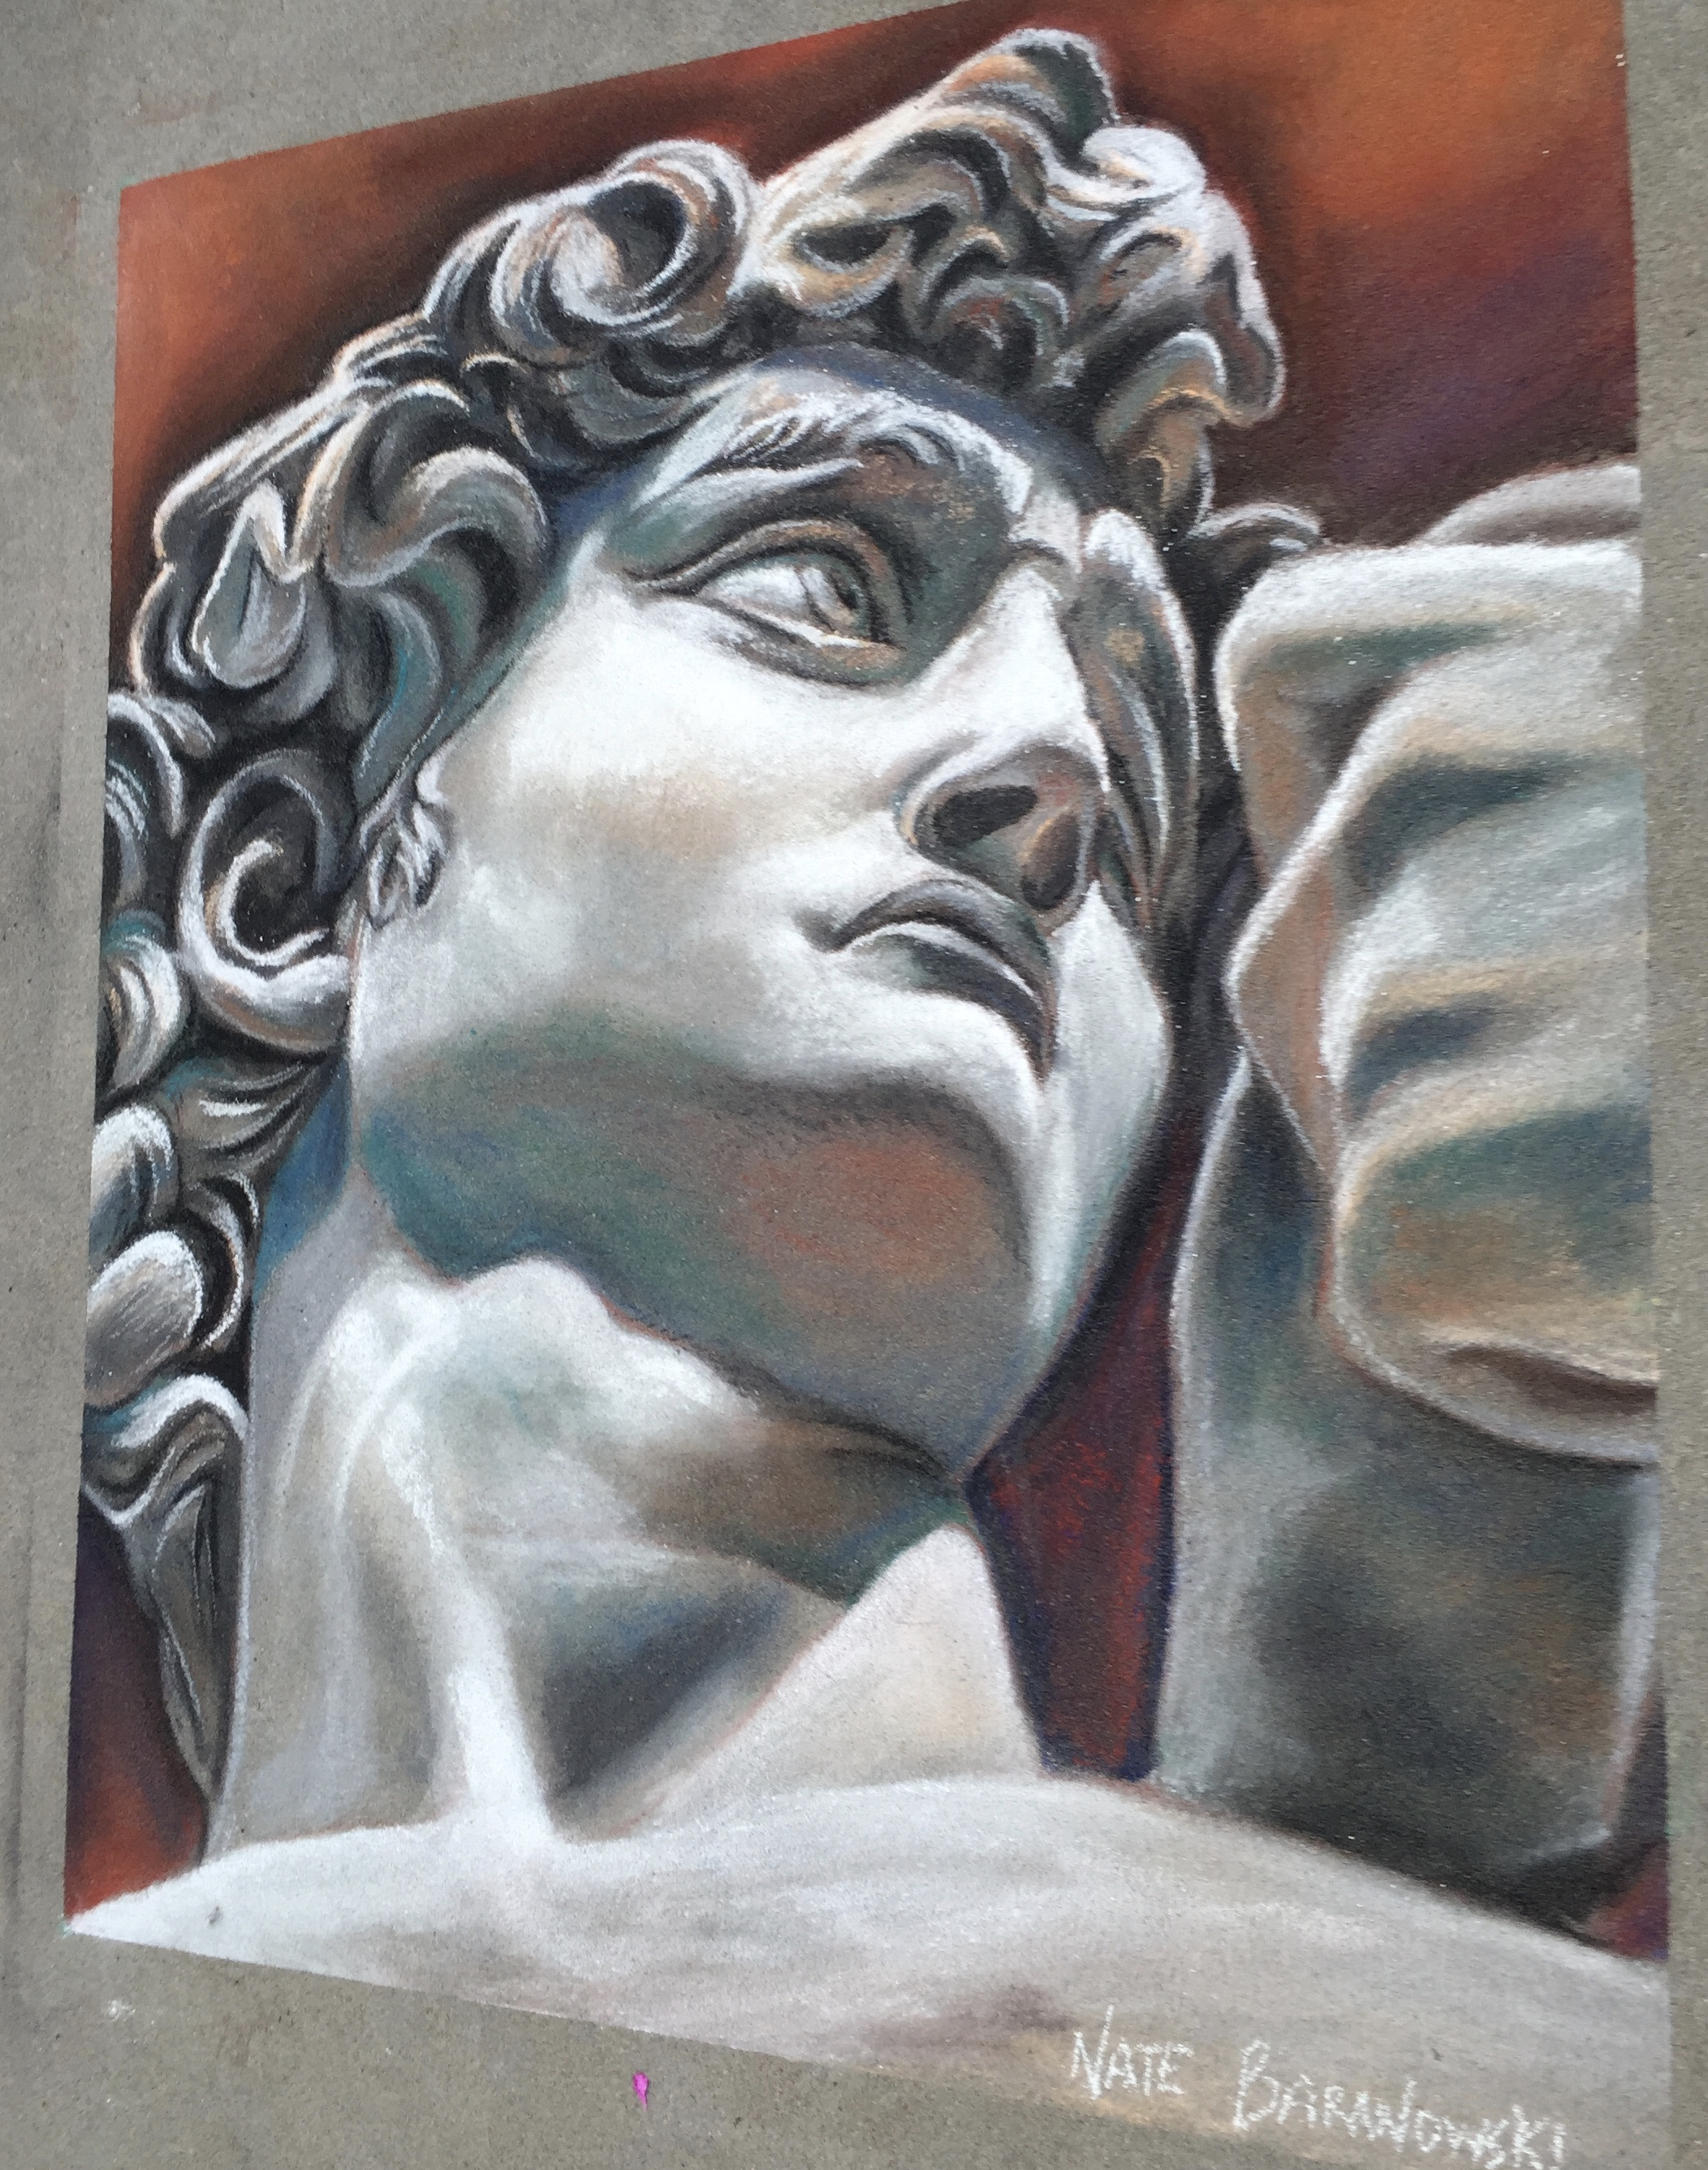 2D Chalk Art: Michelangelo's David